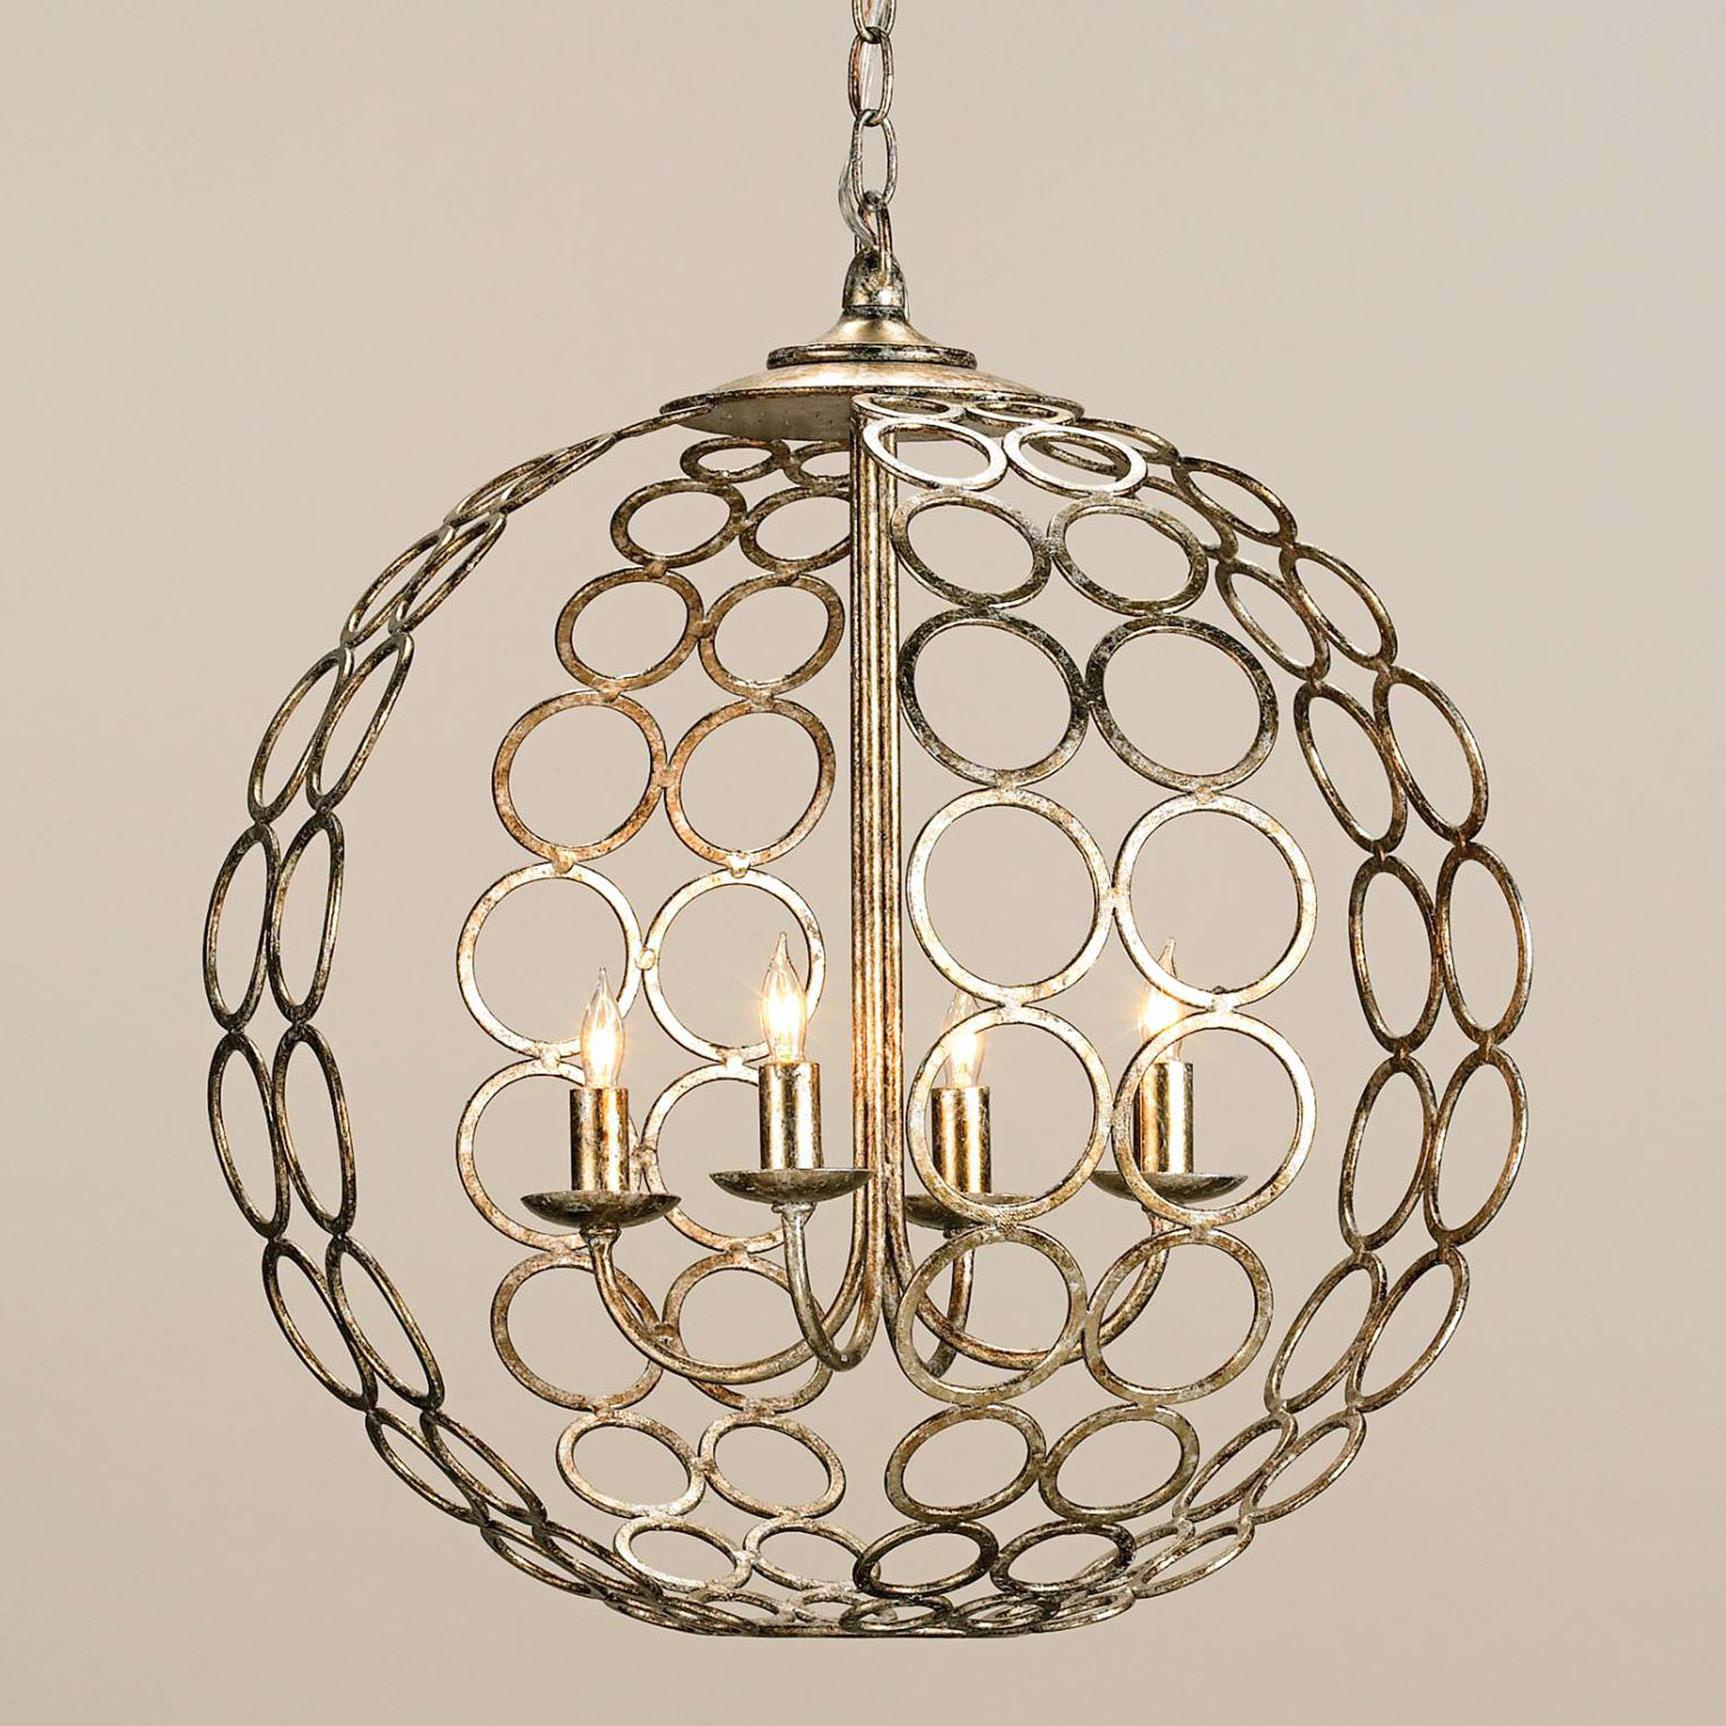 Orb Chandelier Antique Farmhouse